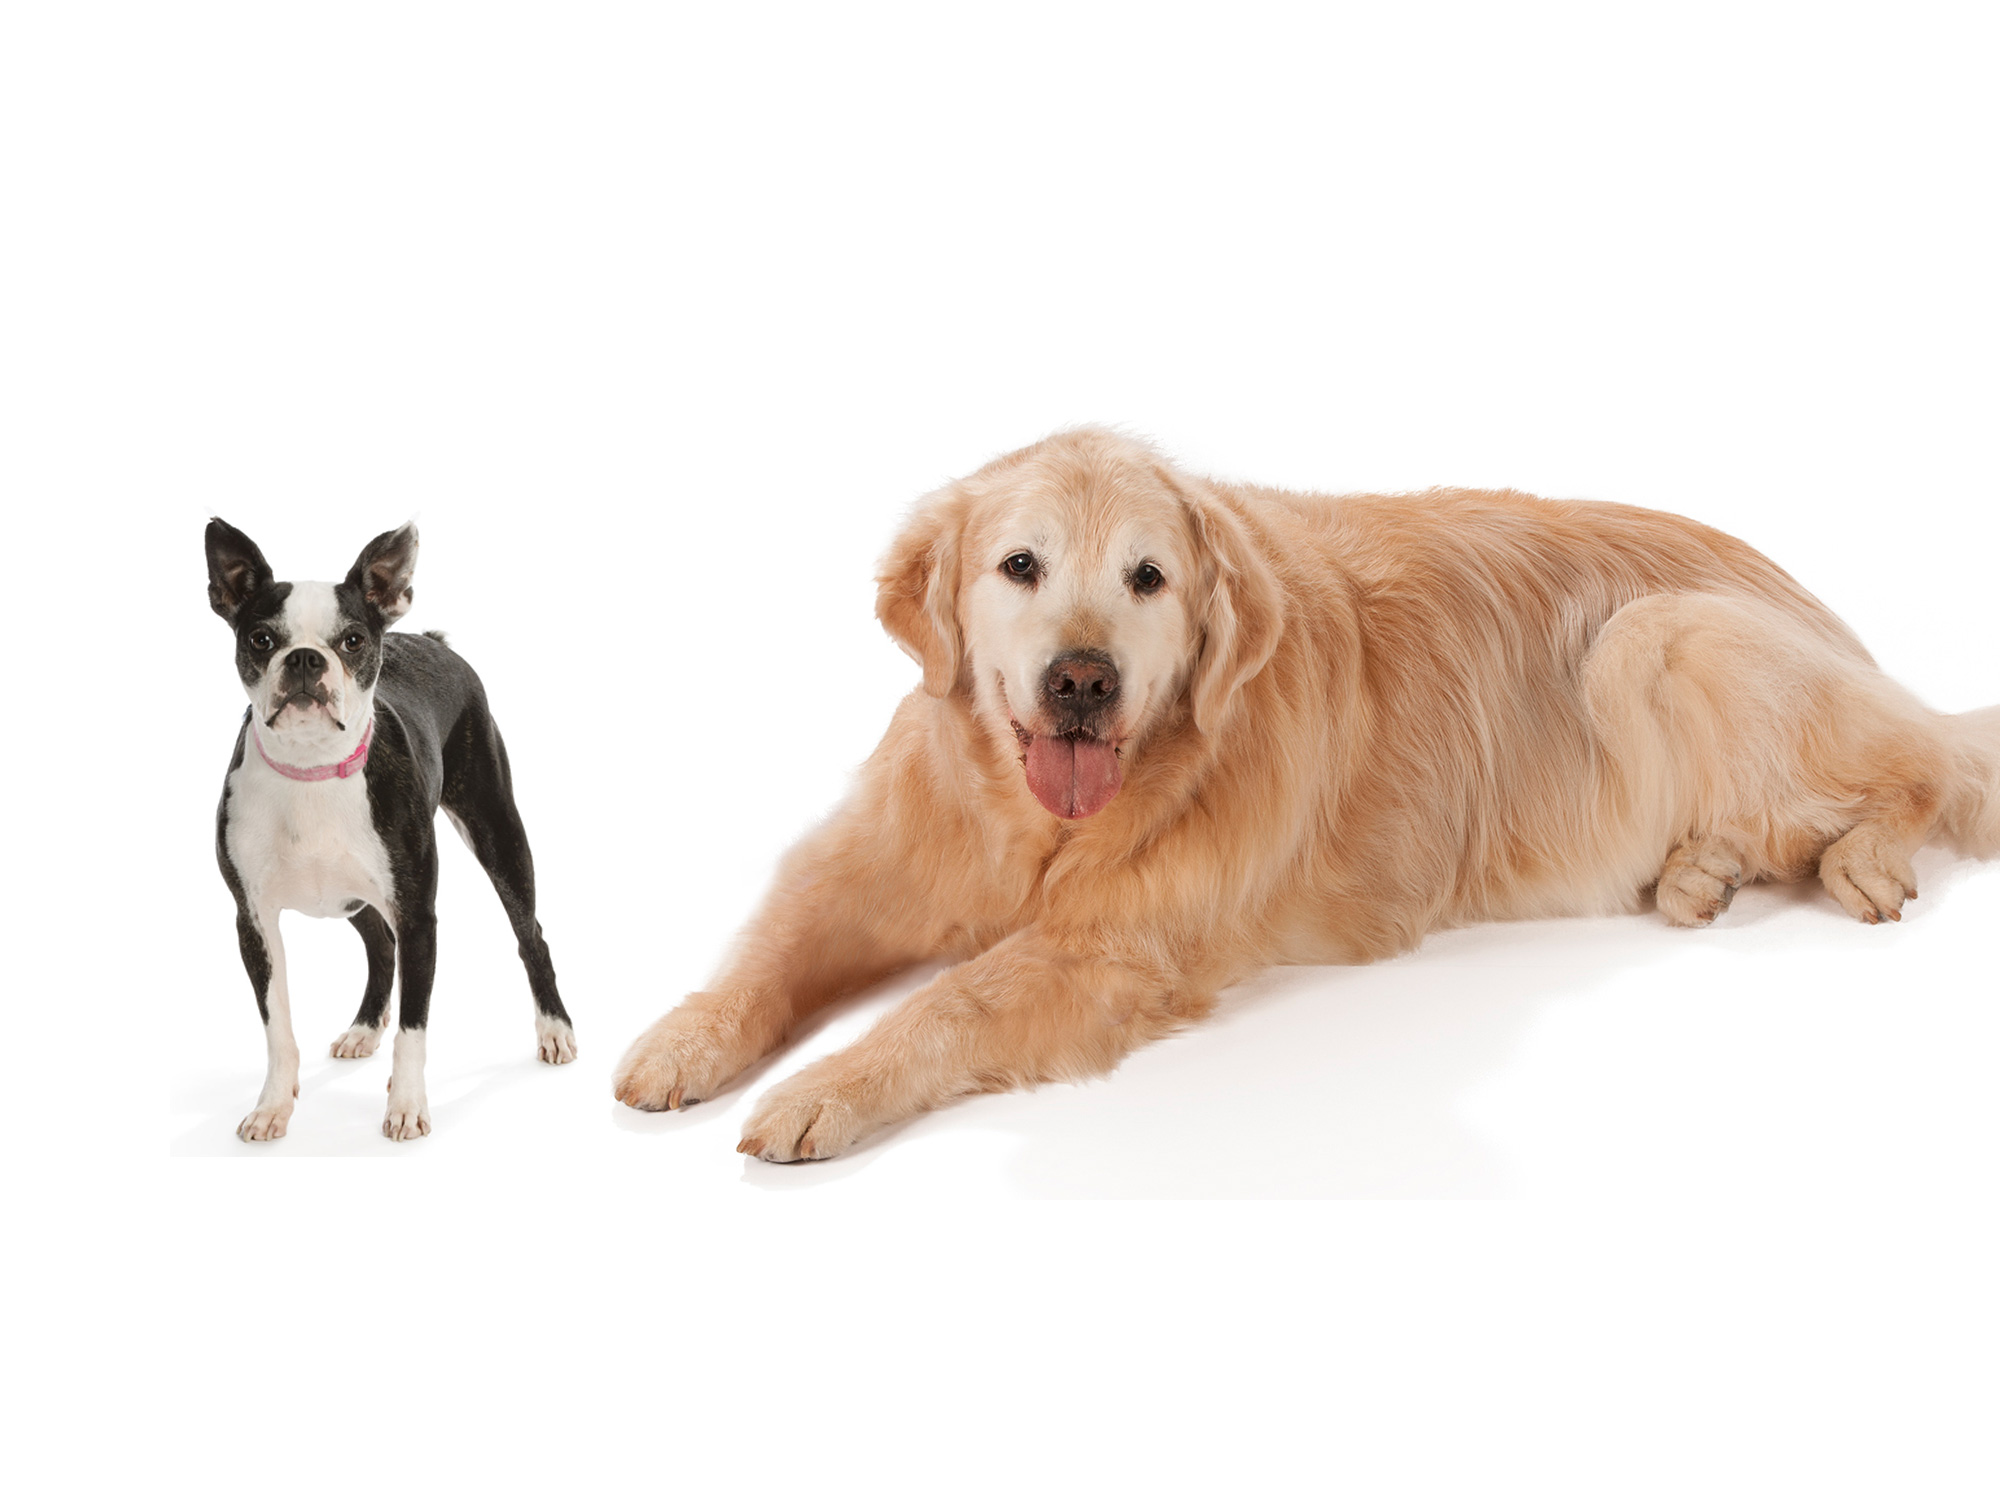 Boston_Terrier_and_Golden_retriever